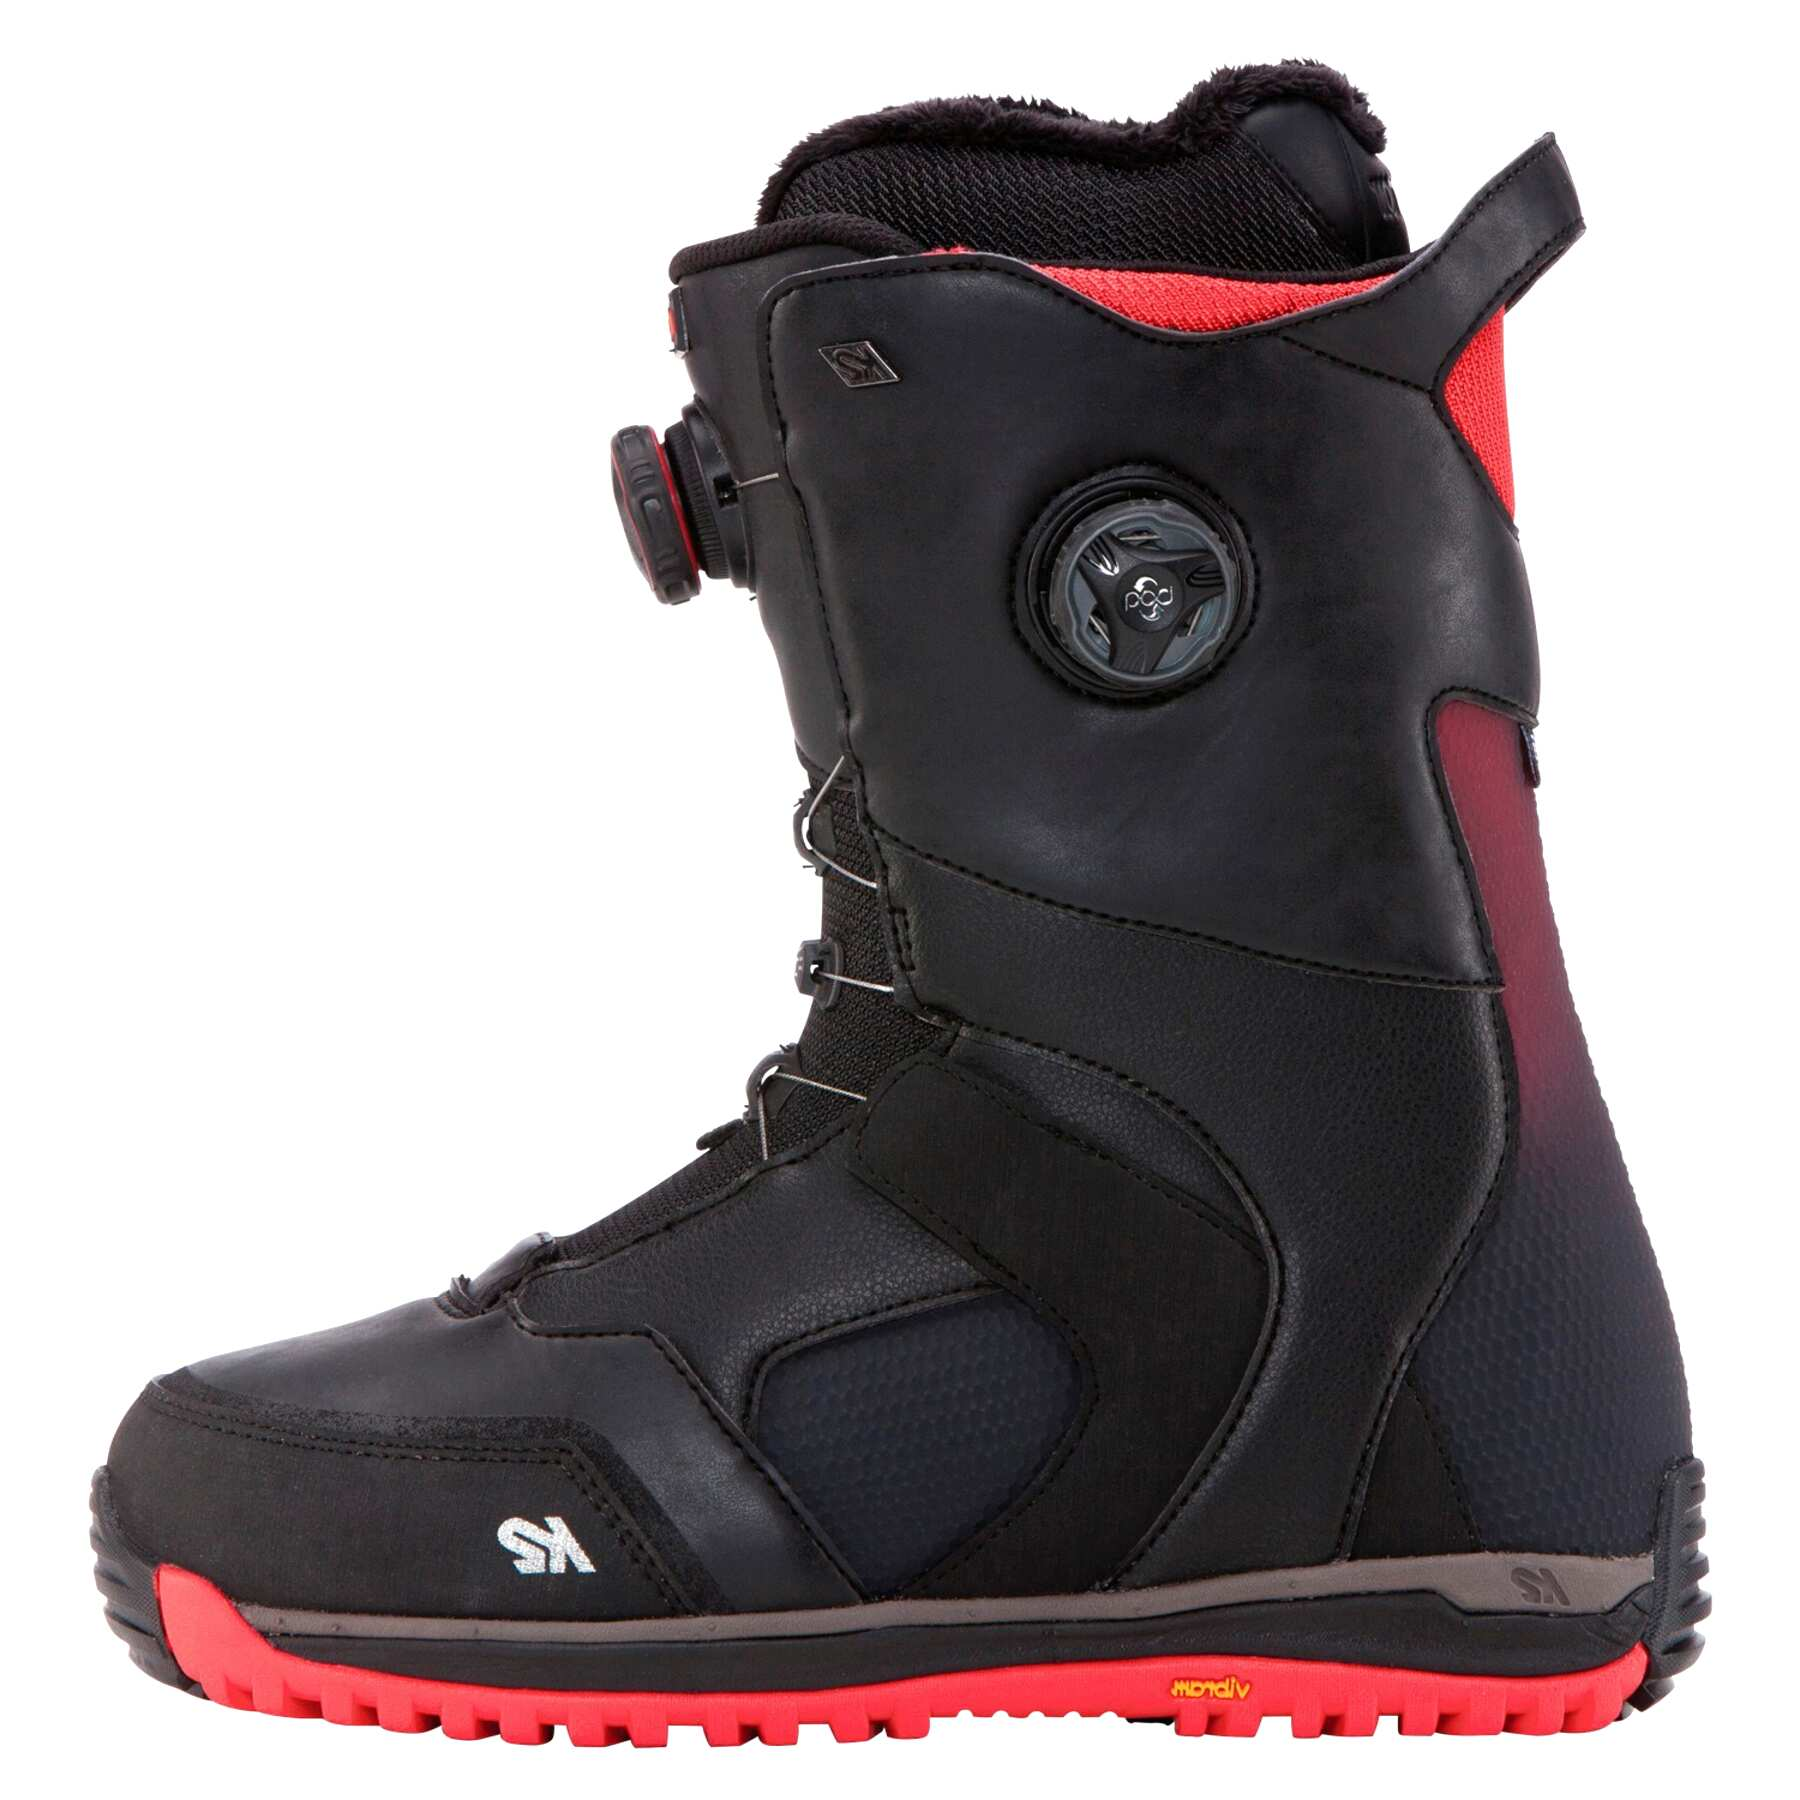 k2 snowboard boots for sale